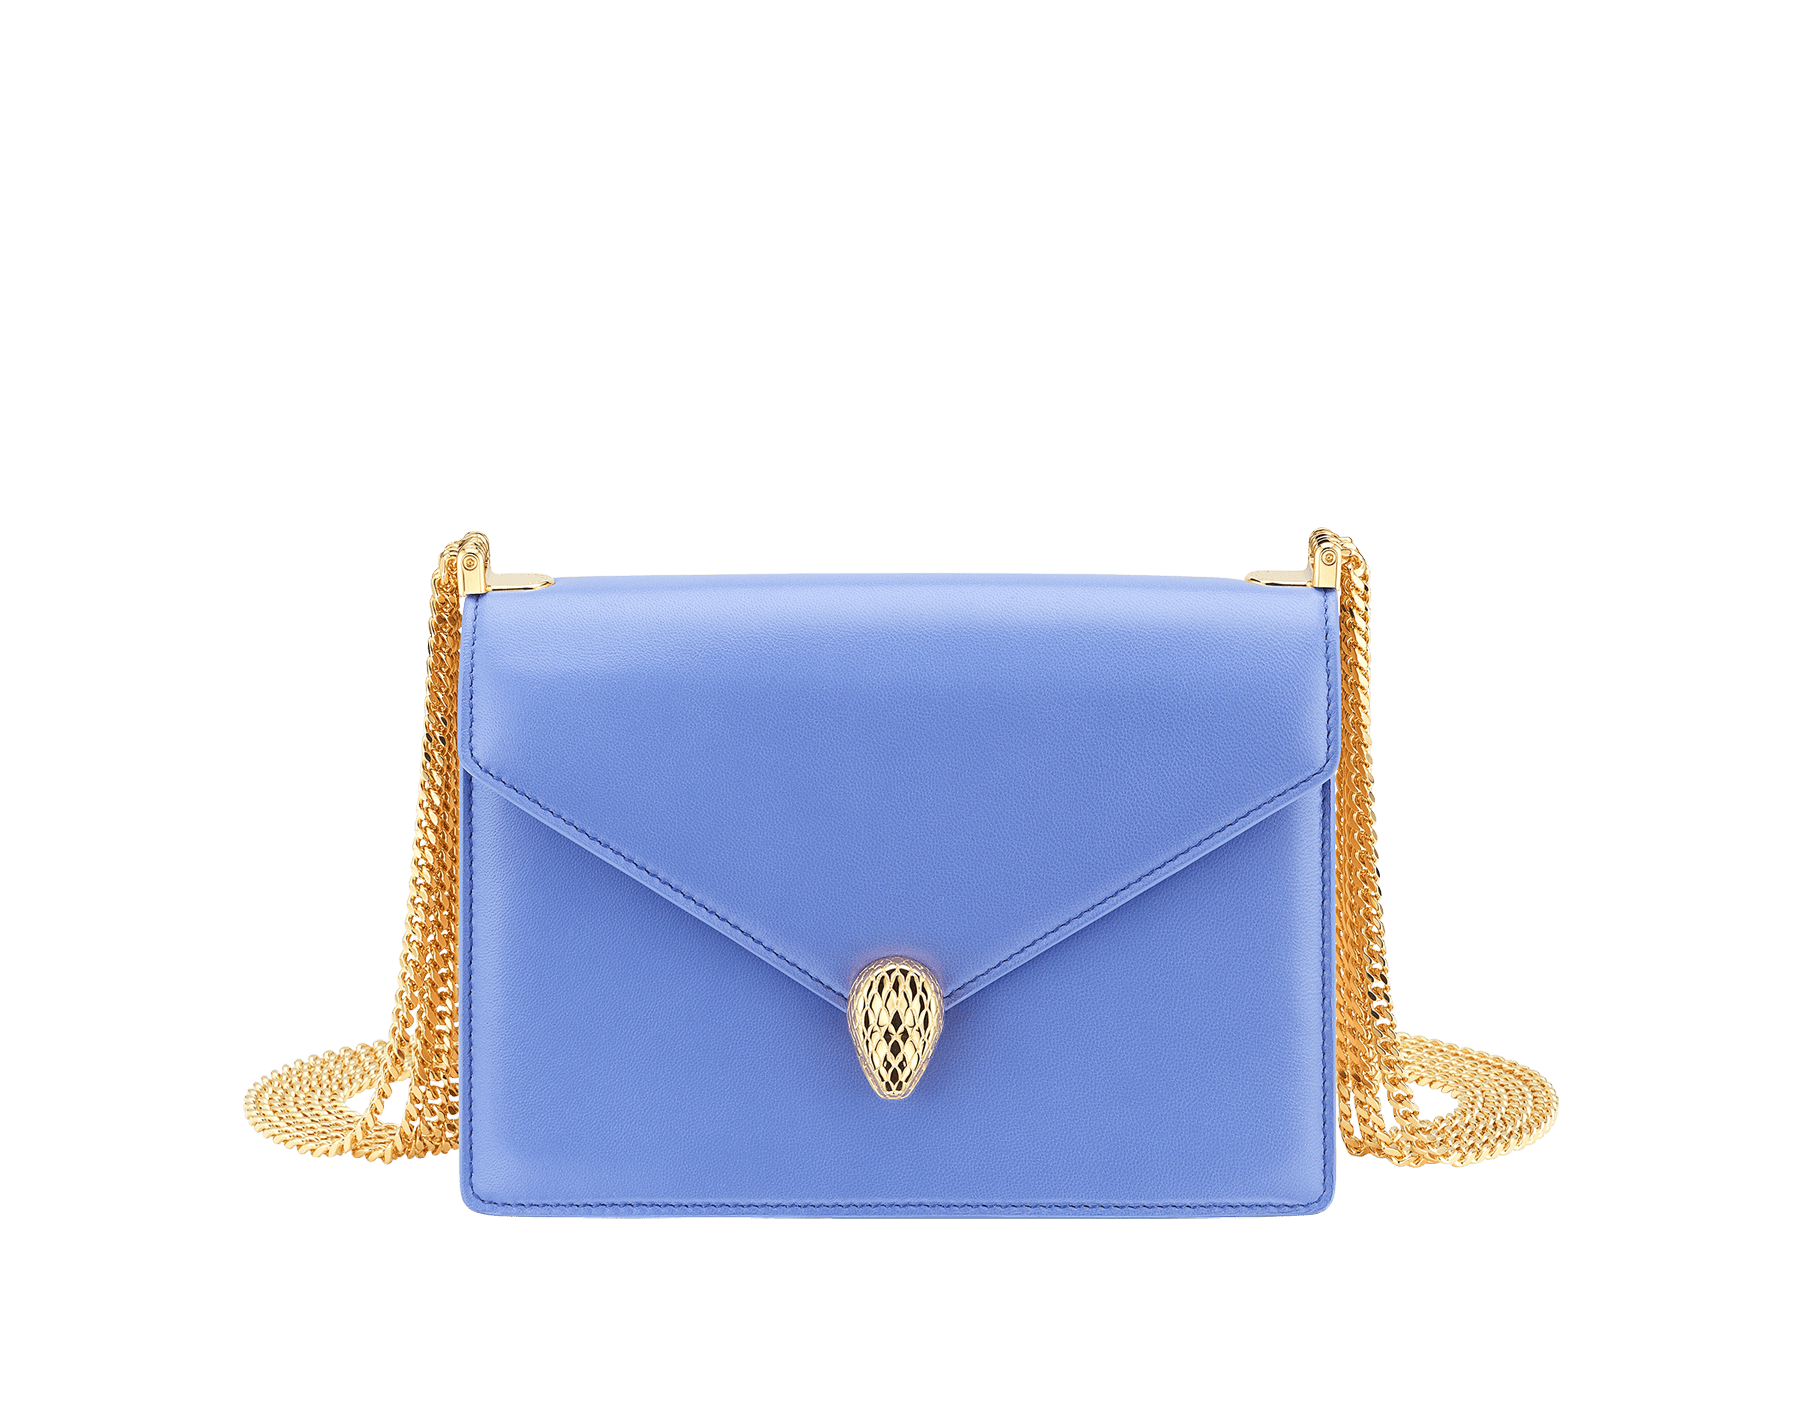 """Serpenti Forever"" multichain shoulder bag in peach ""Papier"" nappa leather, with Lavender Amethyst lilac nappa leather inner lining. New Serpenti head closure in gold-plated brass, finished with red enamel eyes. 1107-NP image 1"